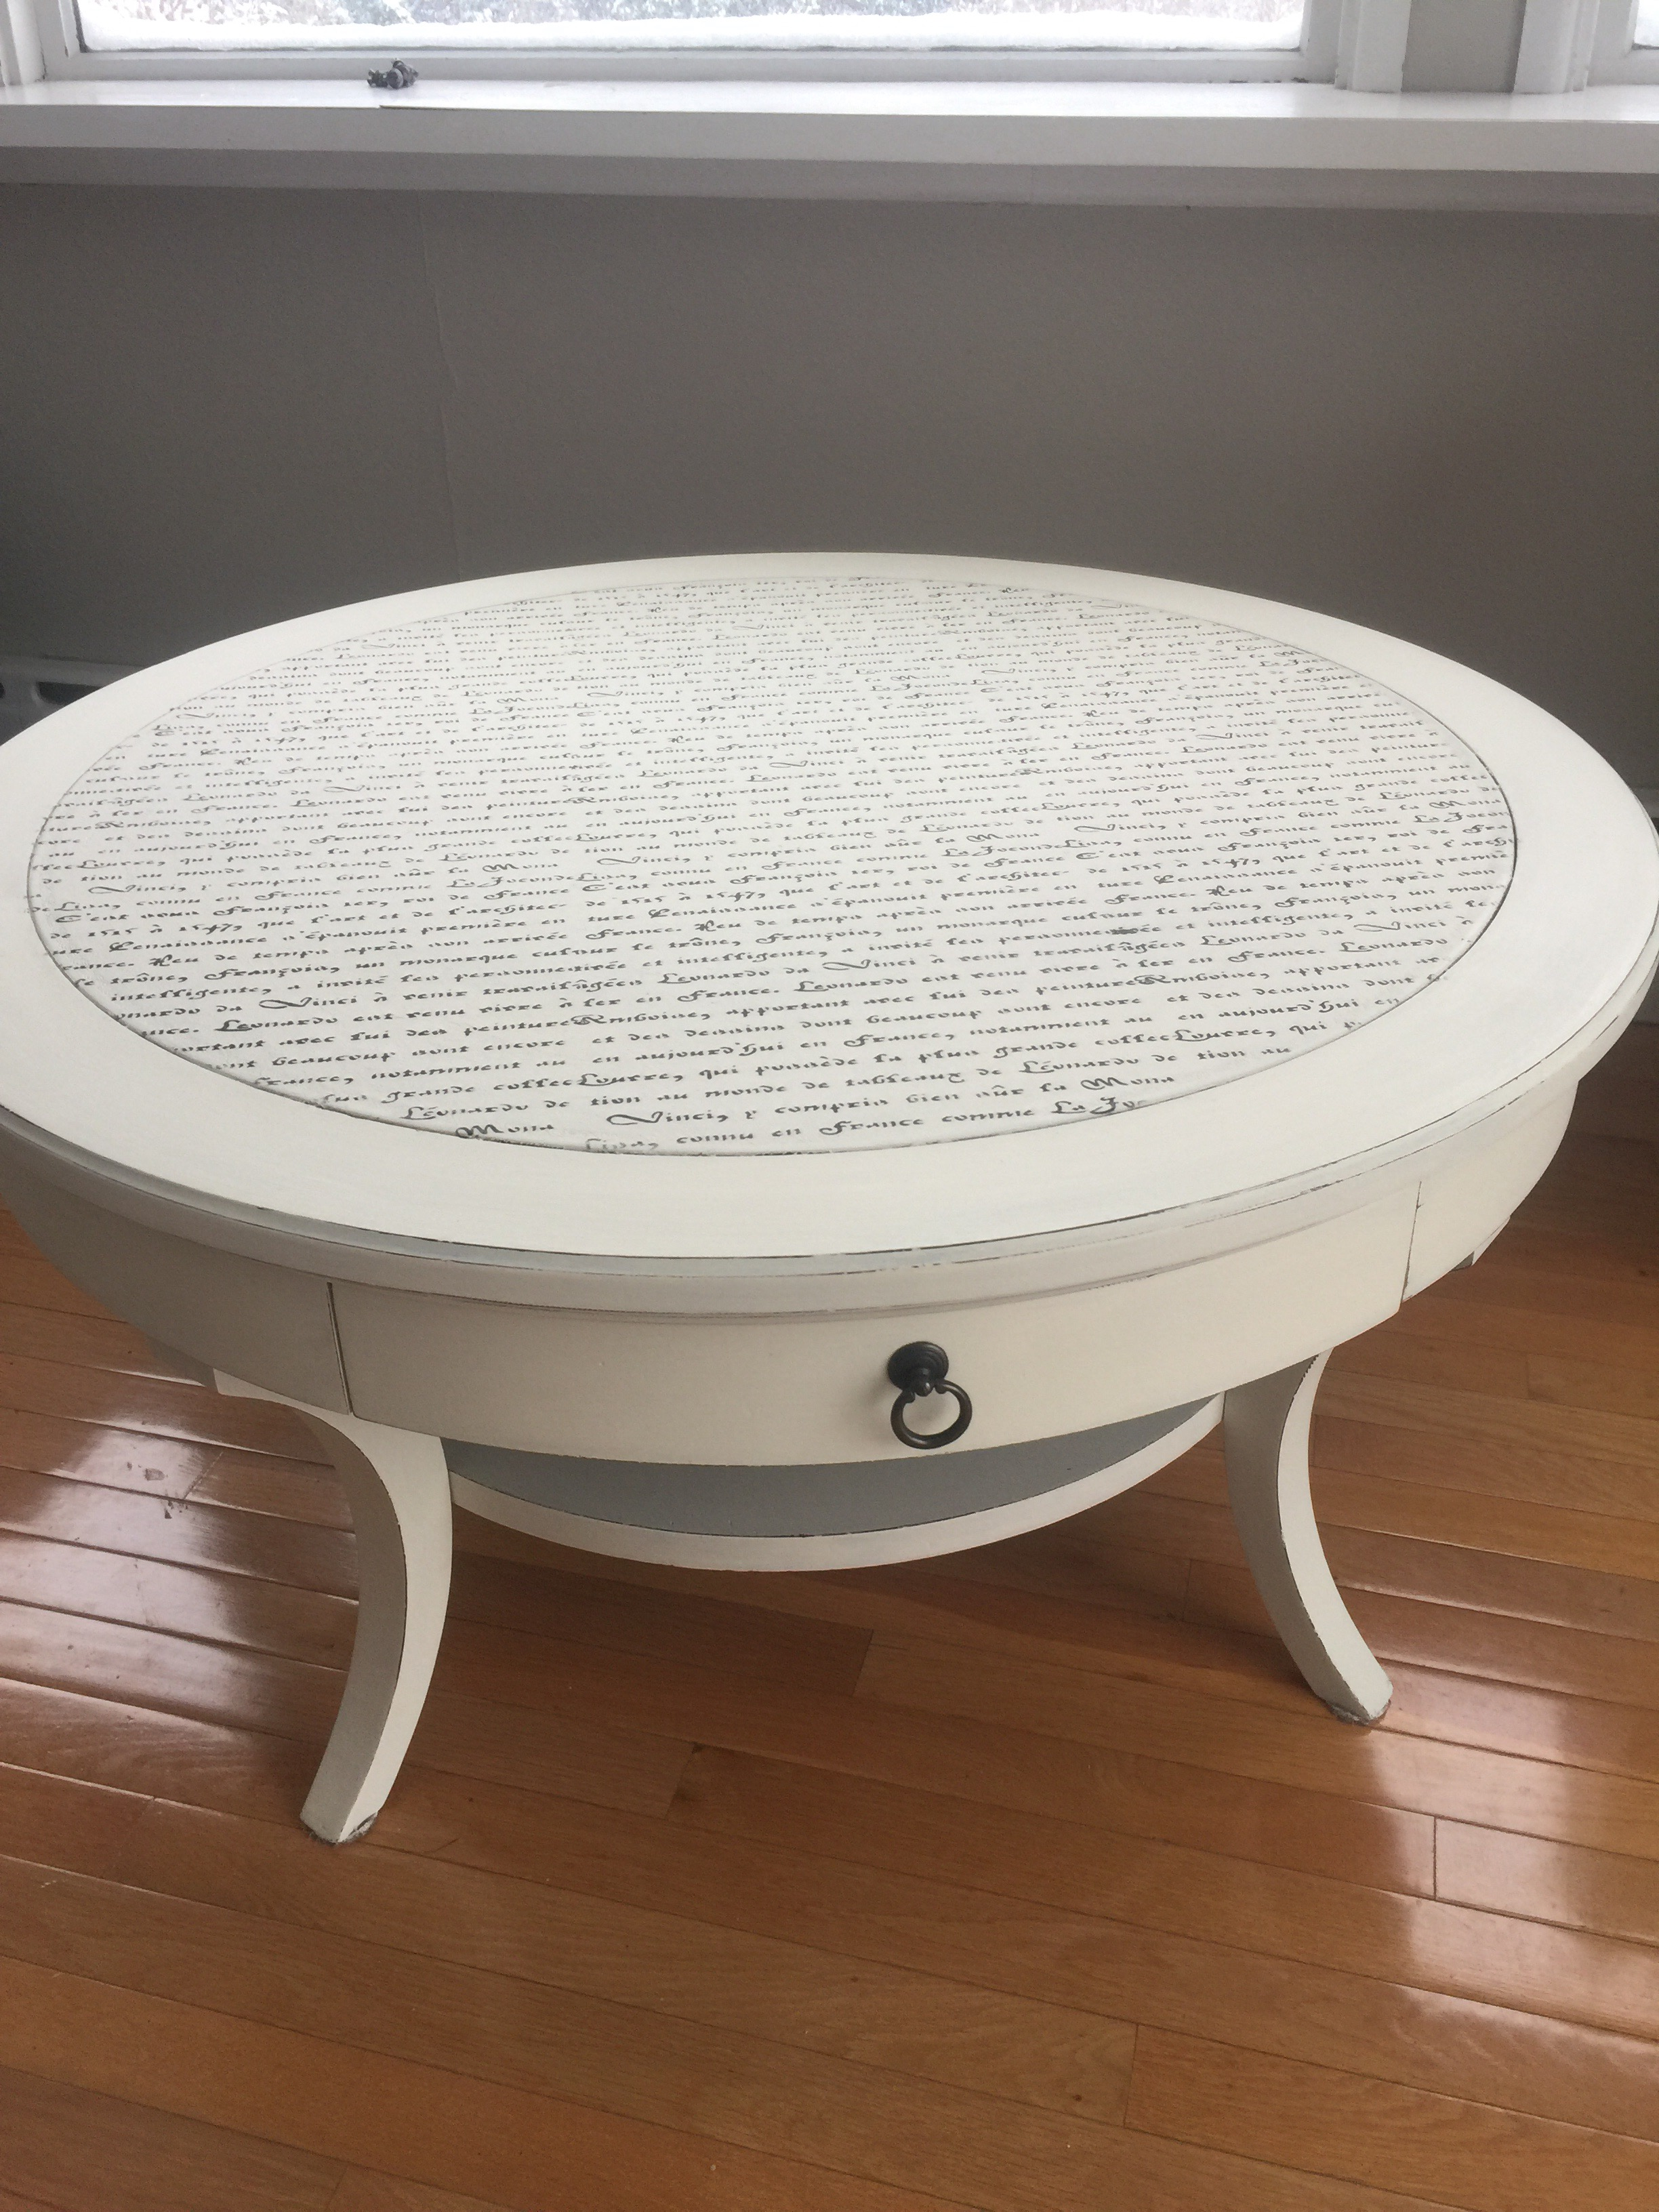 Upcycled French Script Stenciled Coffee Table – wild sparrow designs